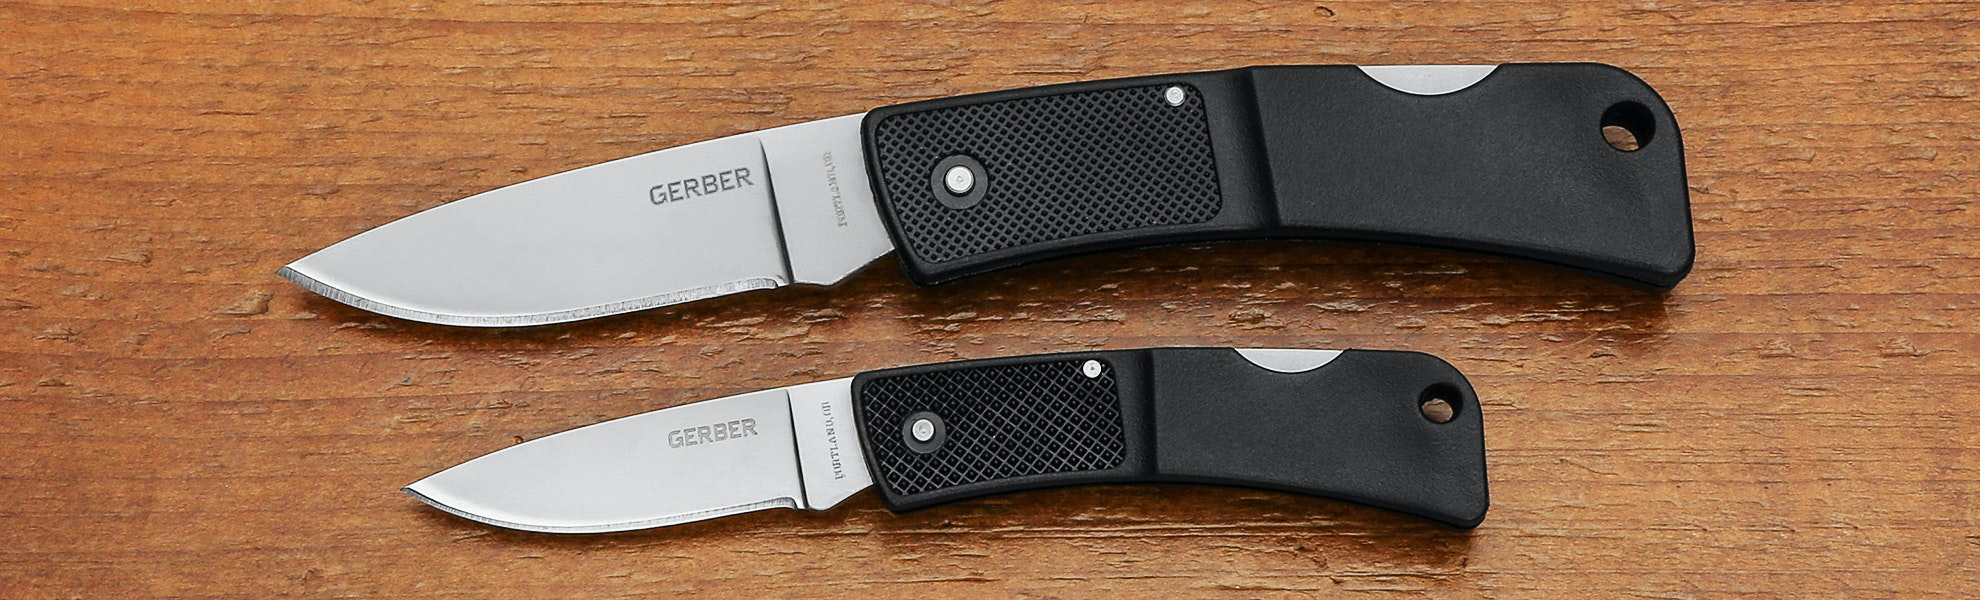 Gerber LST Knife (2-Pack)